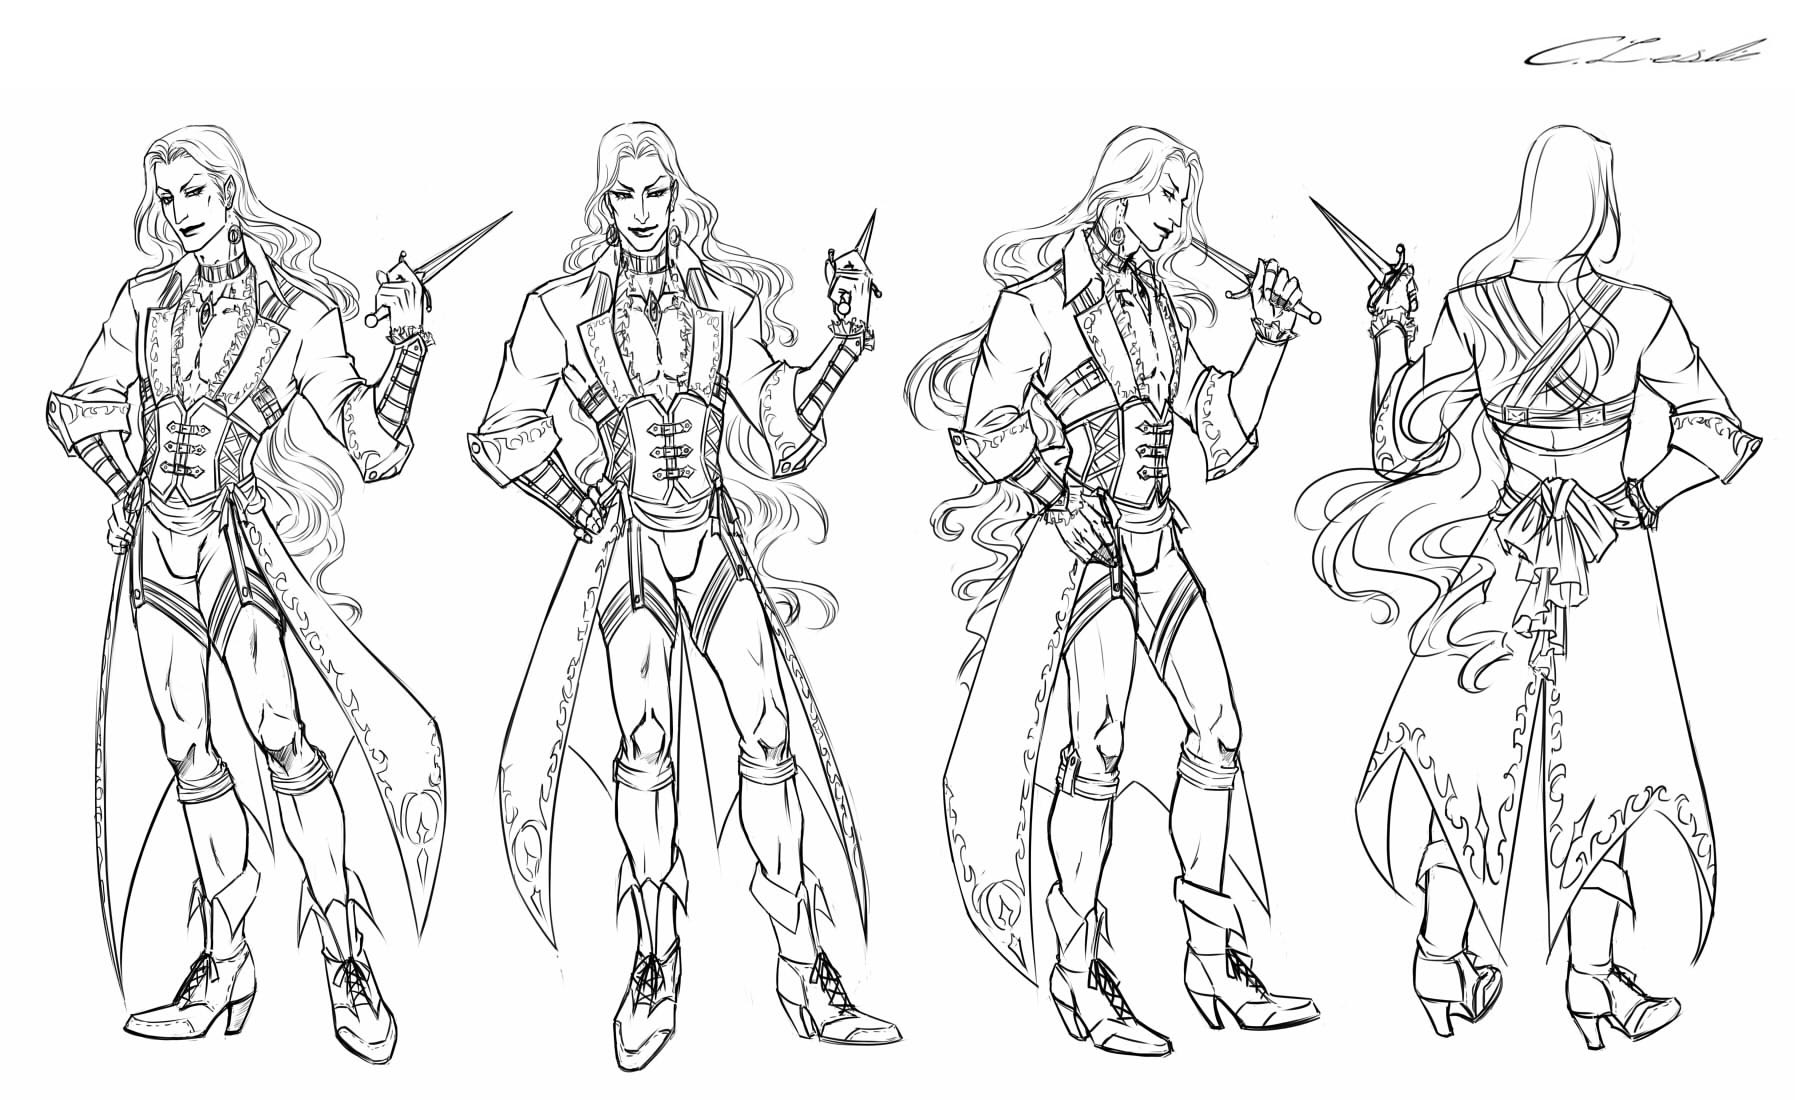 Male Character Design Sheet : Silas talbot character sheet by meiseki on deviantart